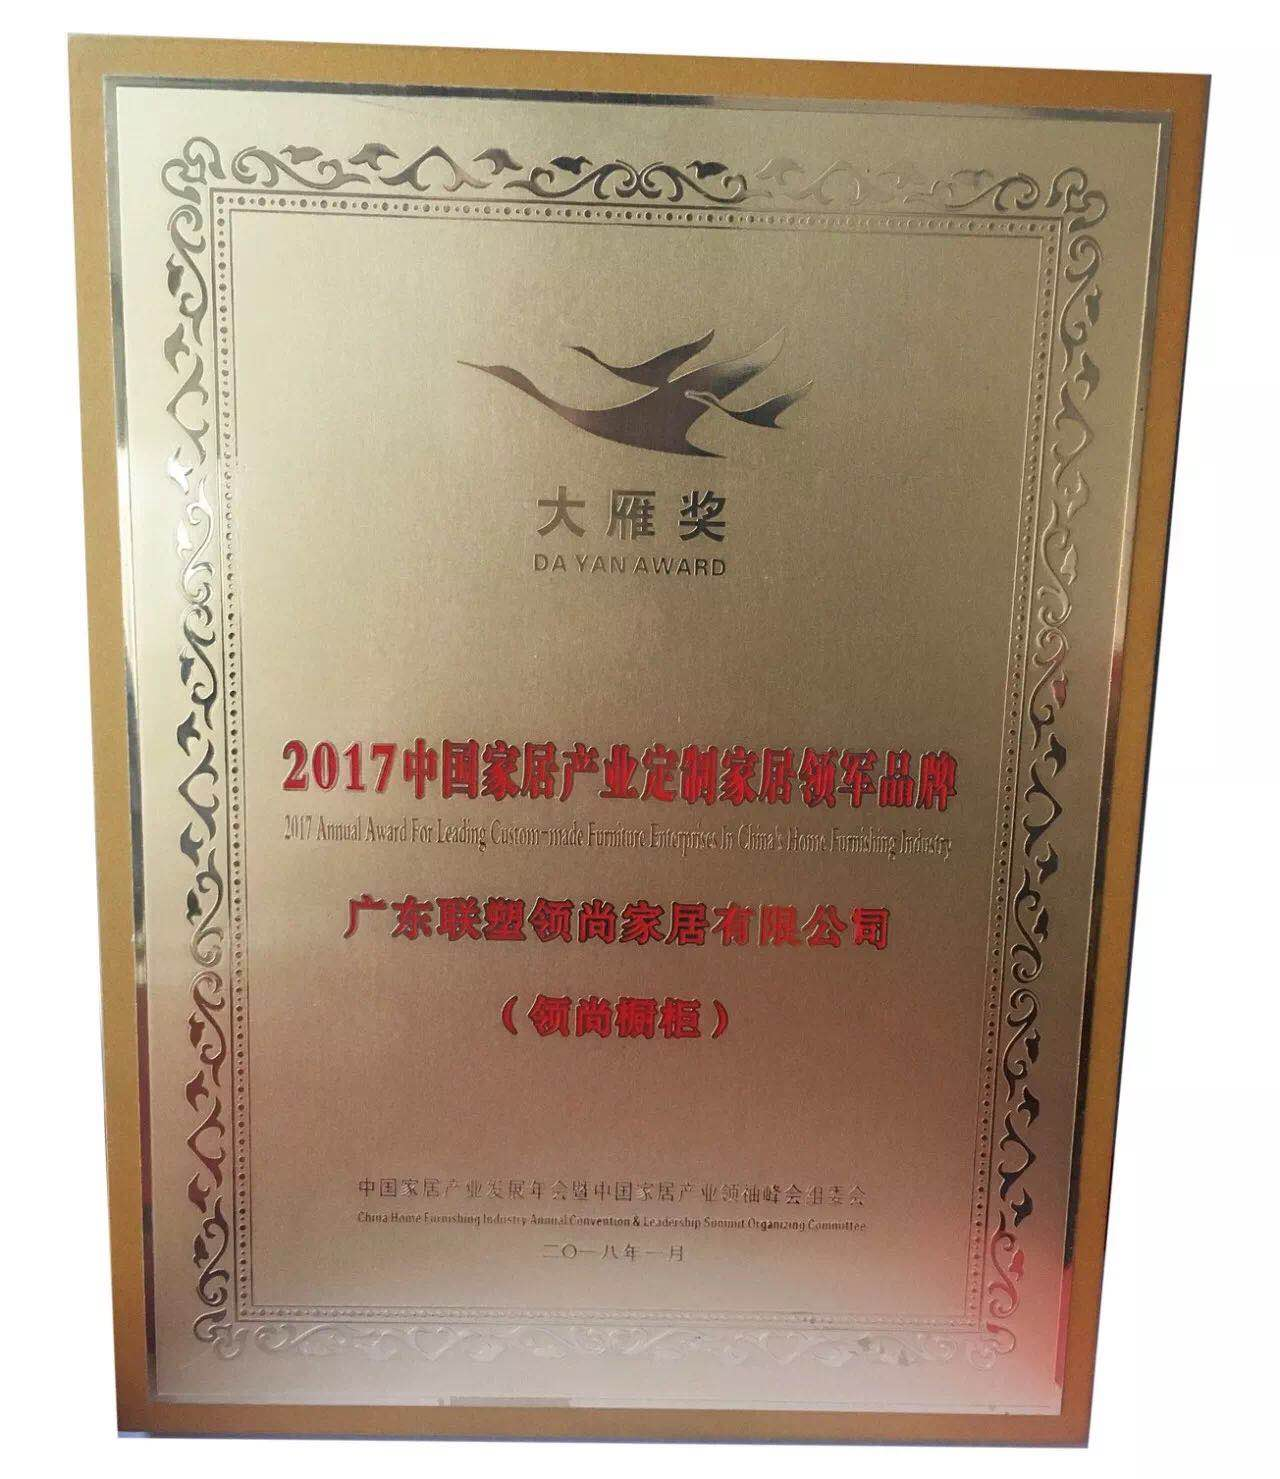 2017 Annual Award For Leading Custom-made Furniture Enterprise In China's Home Furnishing Industry